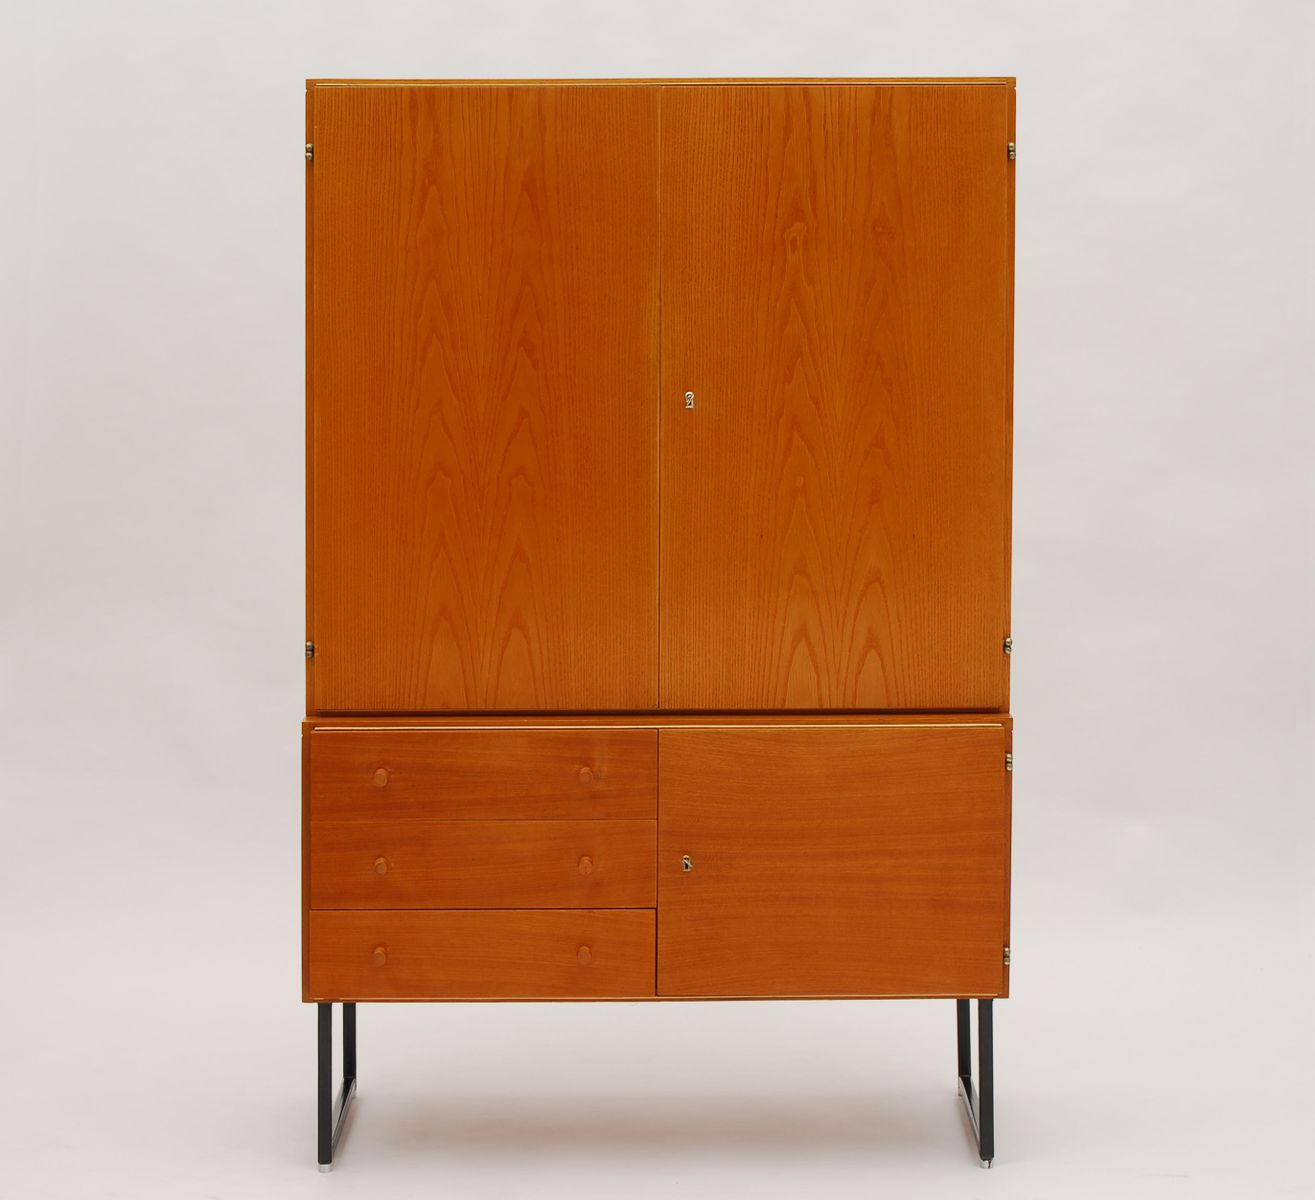 vintage wooden highboard by interier praha 1965 for sale. Black Bedroom Furniture Sets. Home Design Ideas